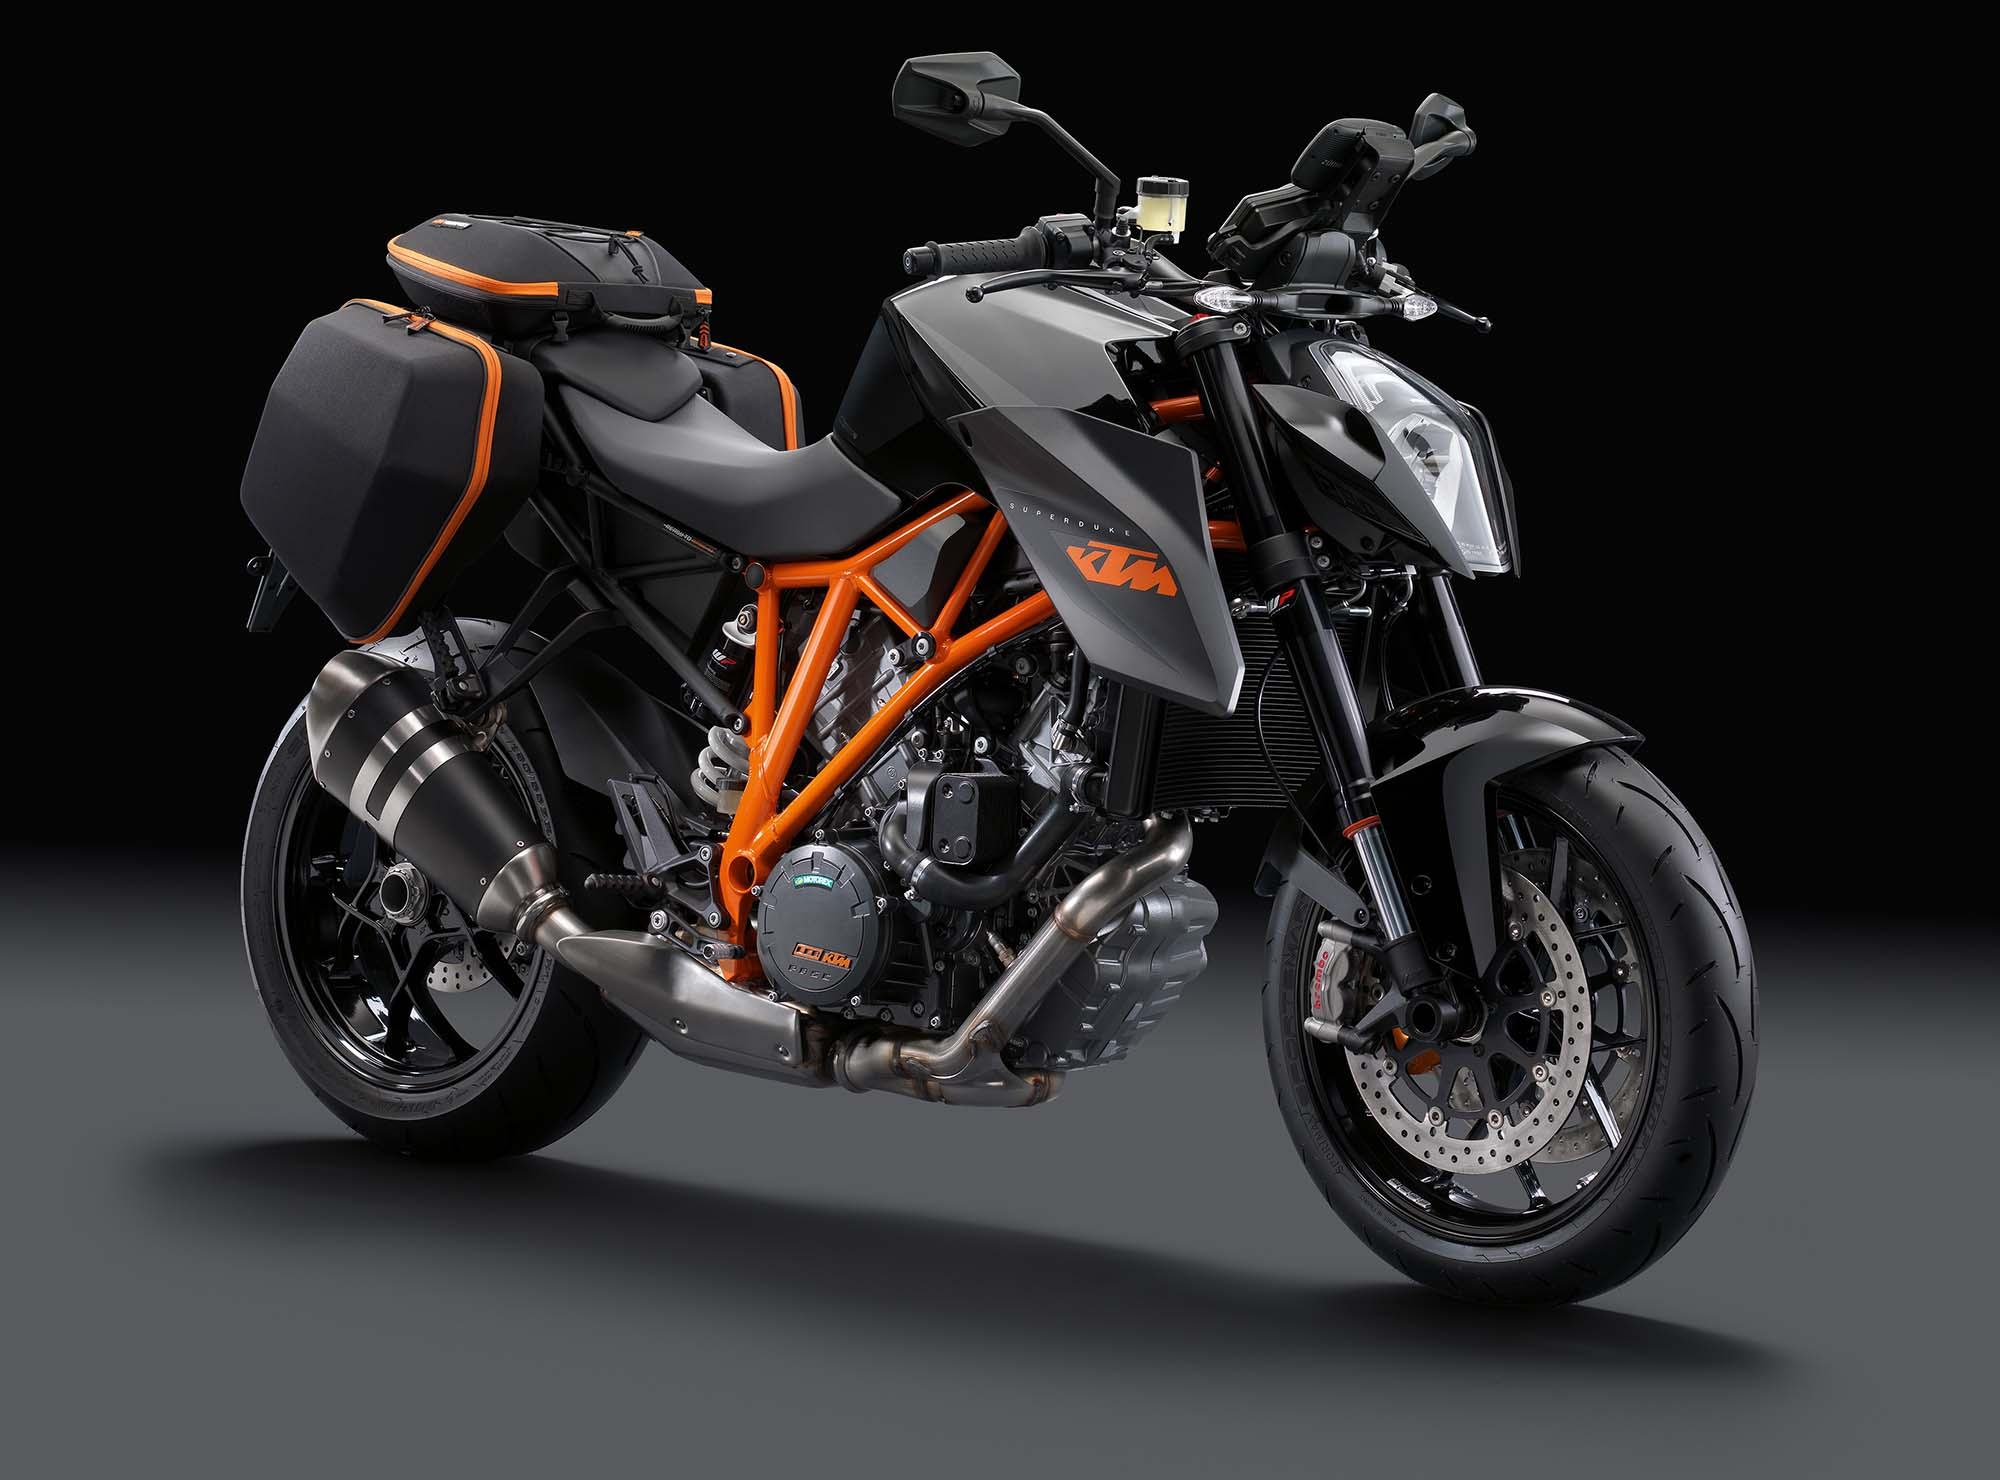 Ktm 1290 Super Duke R >> 38 Hi-Res Photos of the KTM 1290 Super Duke R - Asphalt & Rubber